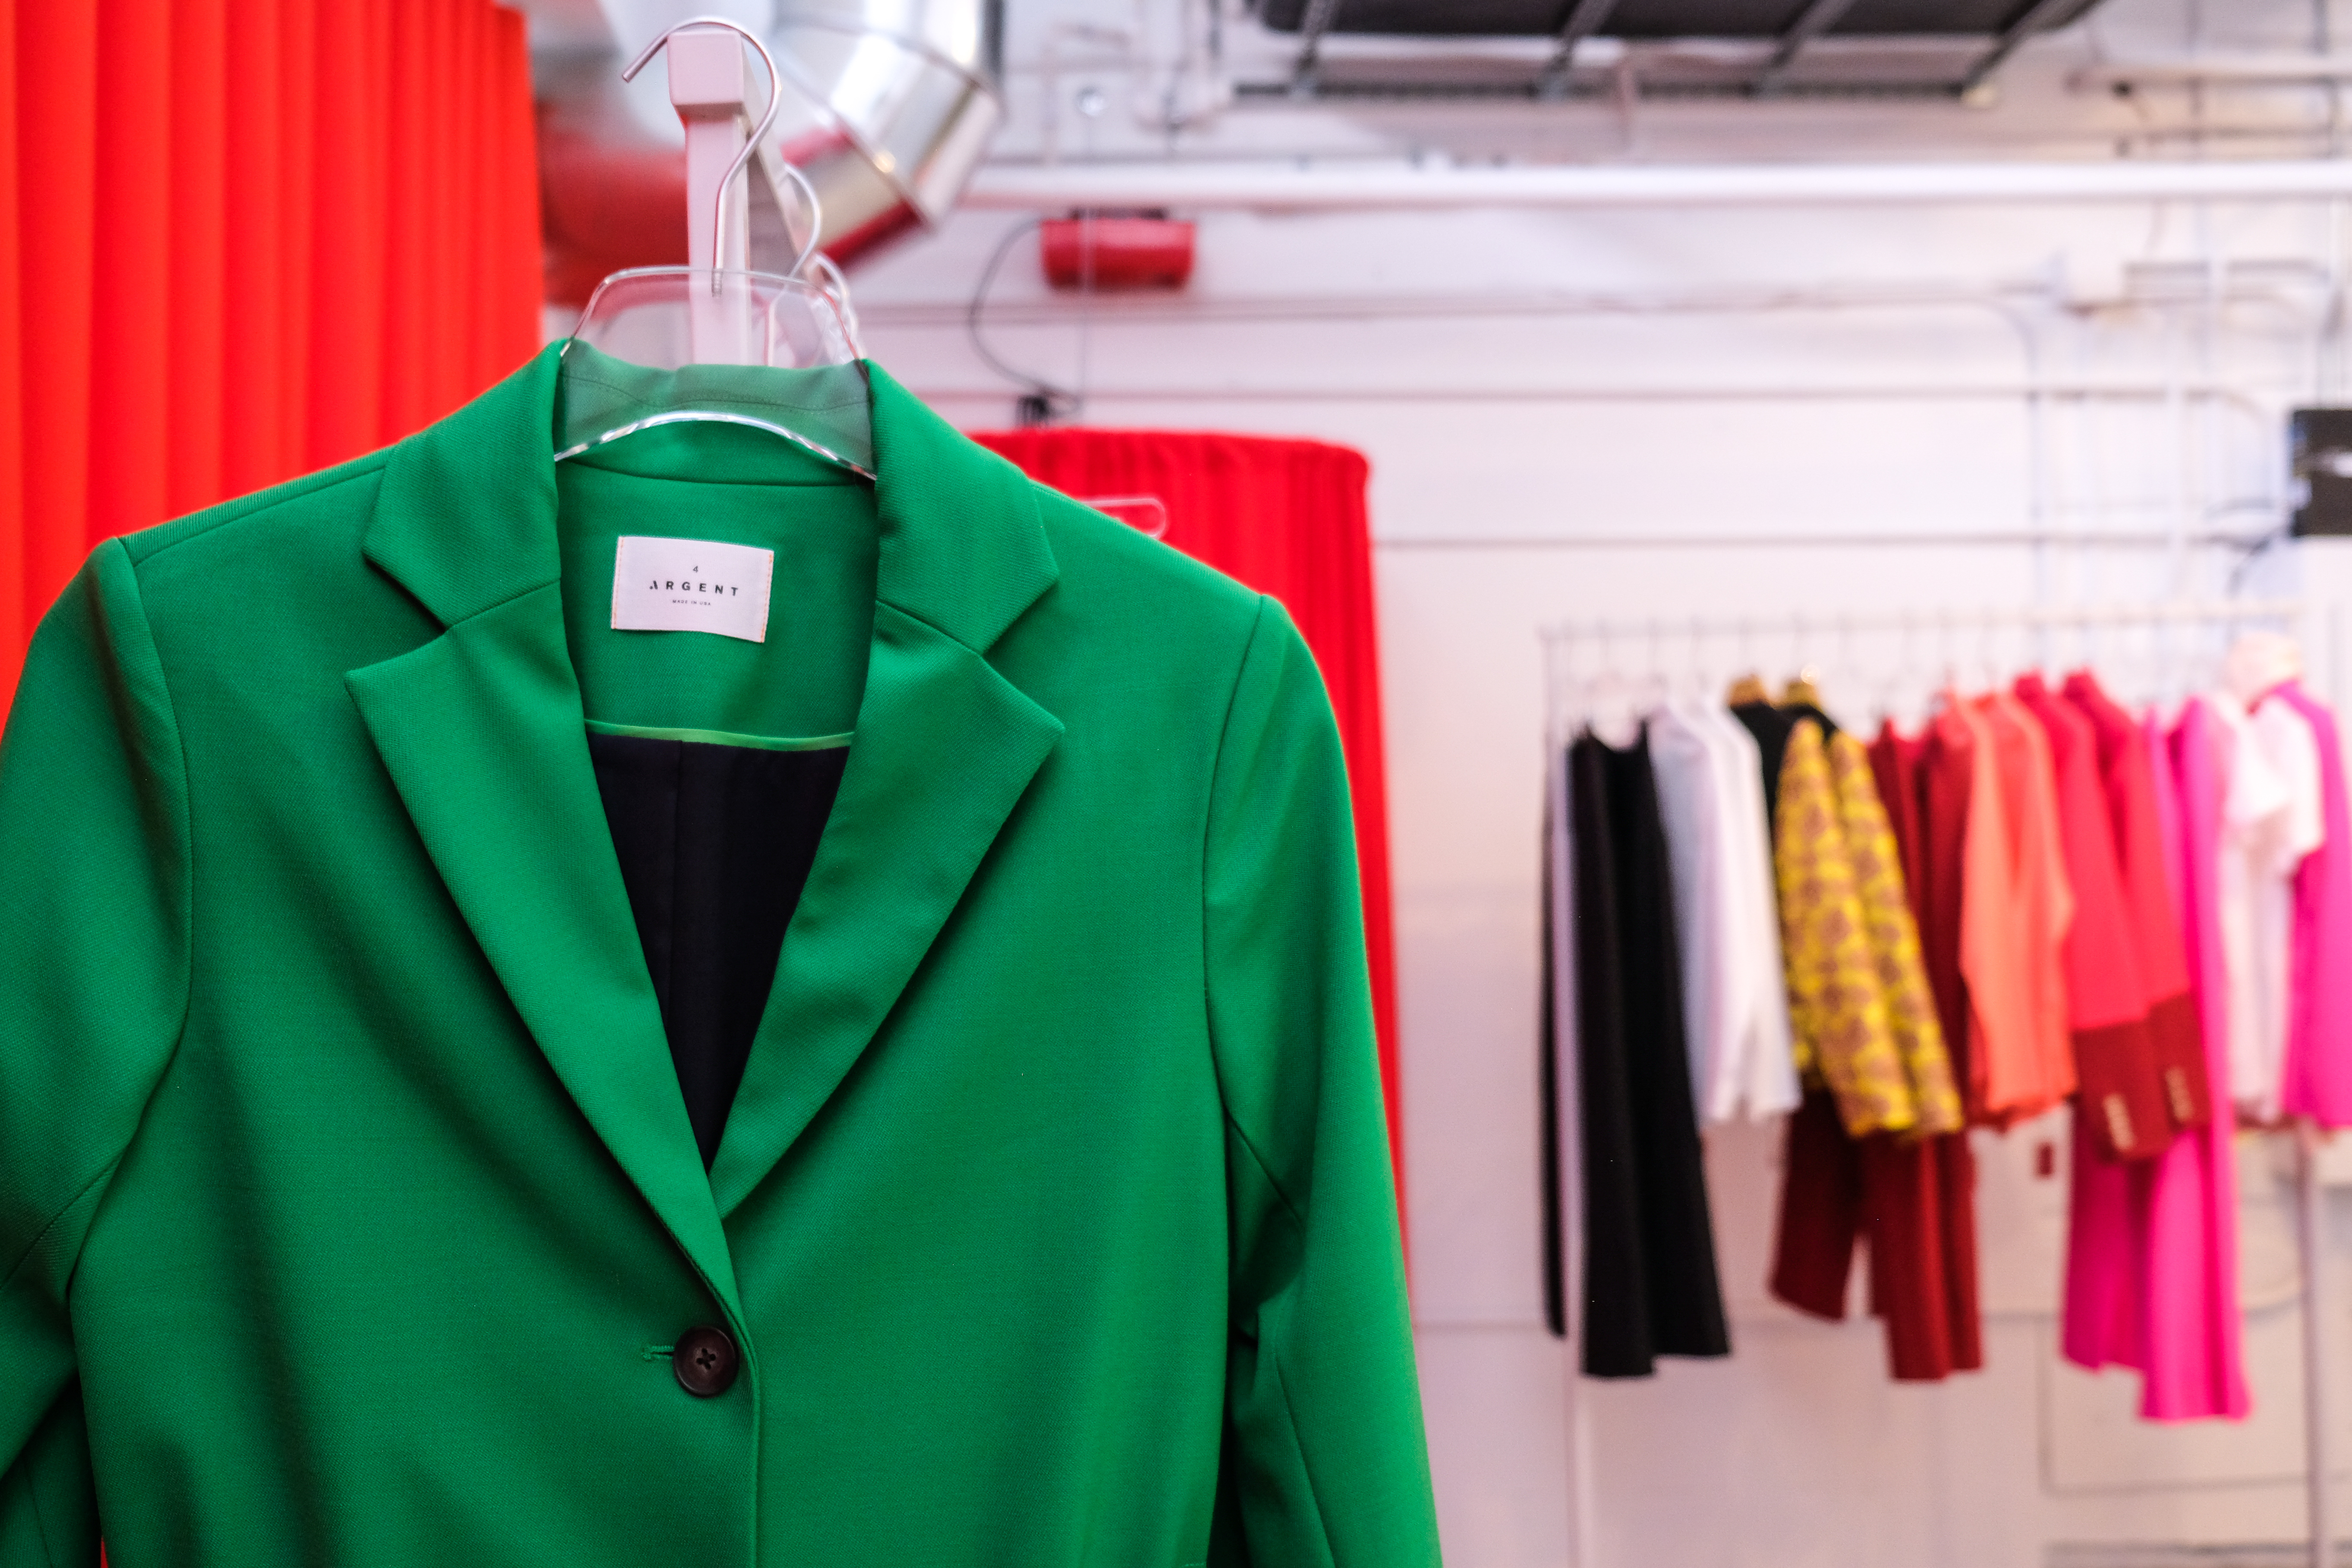 Cinch-waist green blazer by women's workwear suit company Argent by female founder Sali Christeson